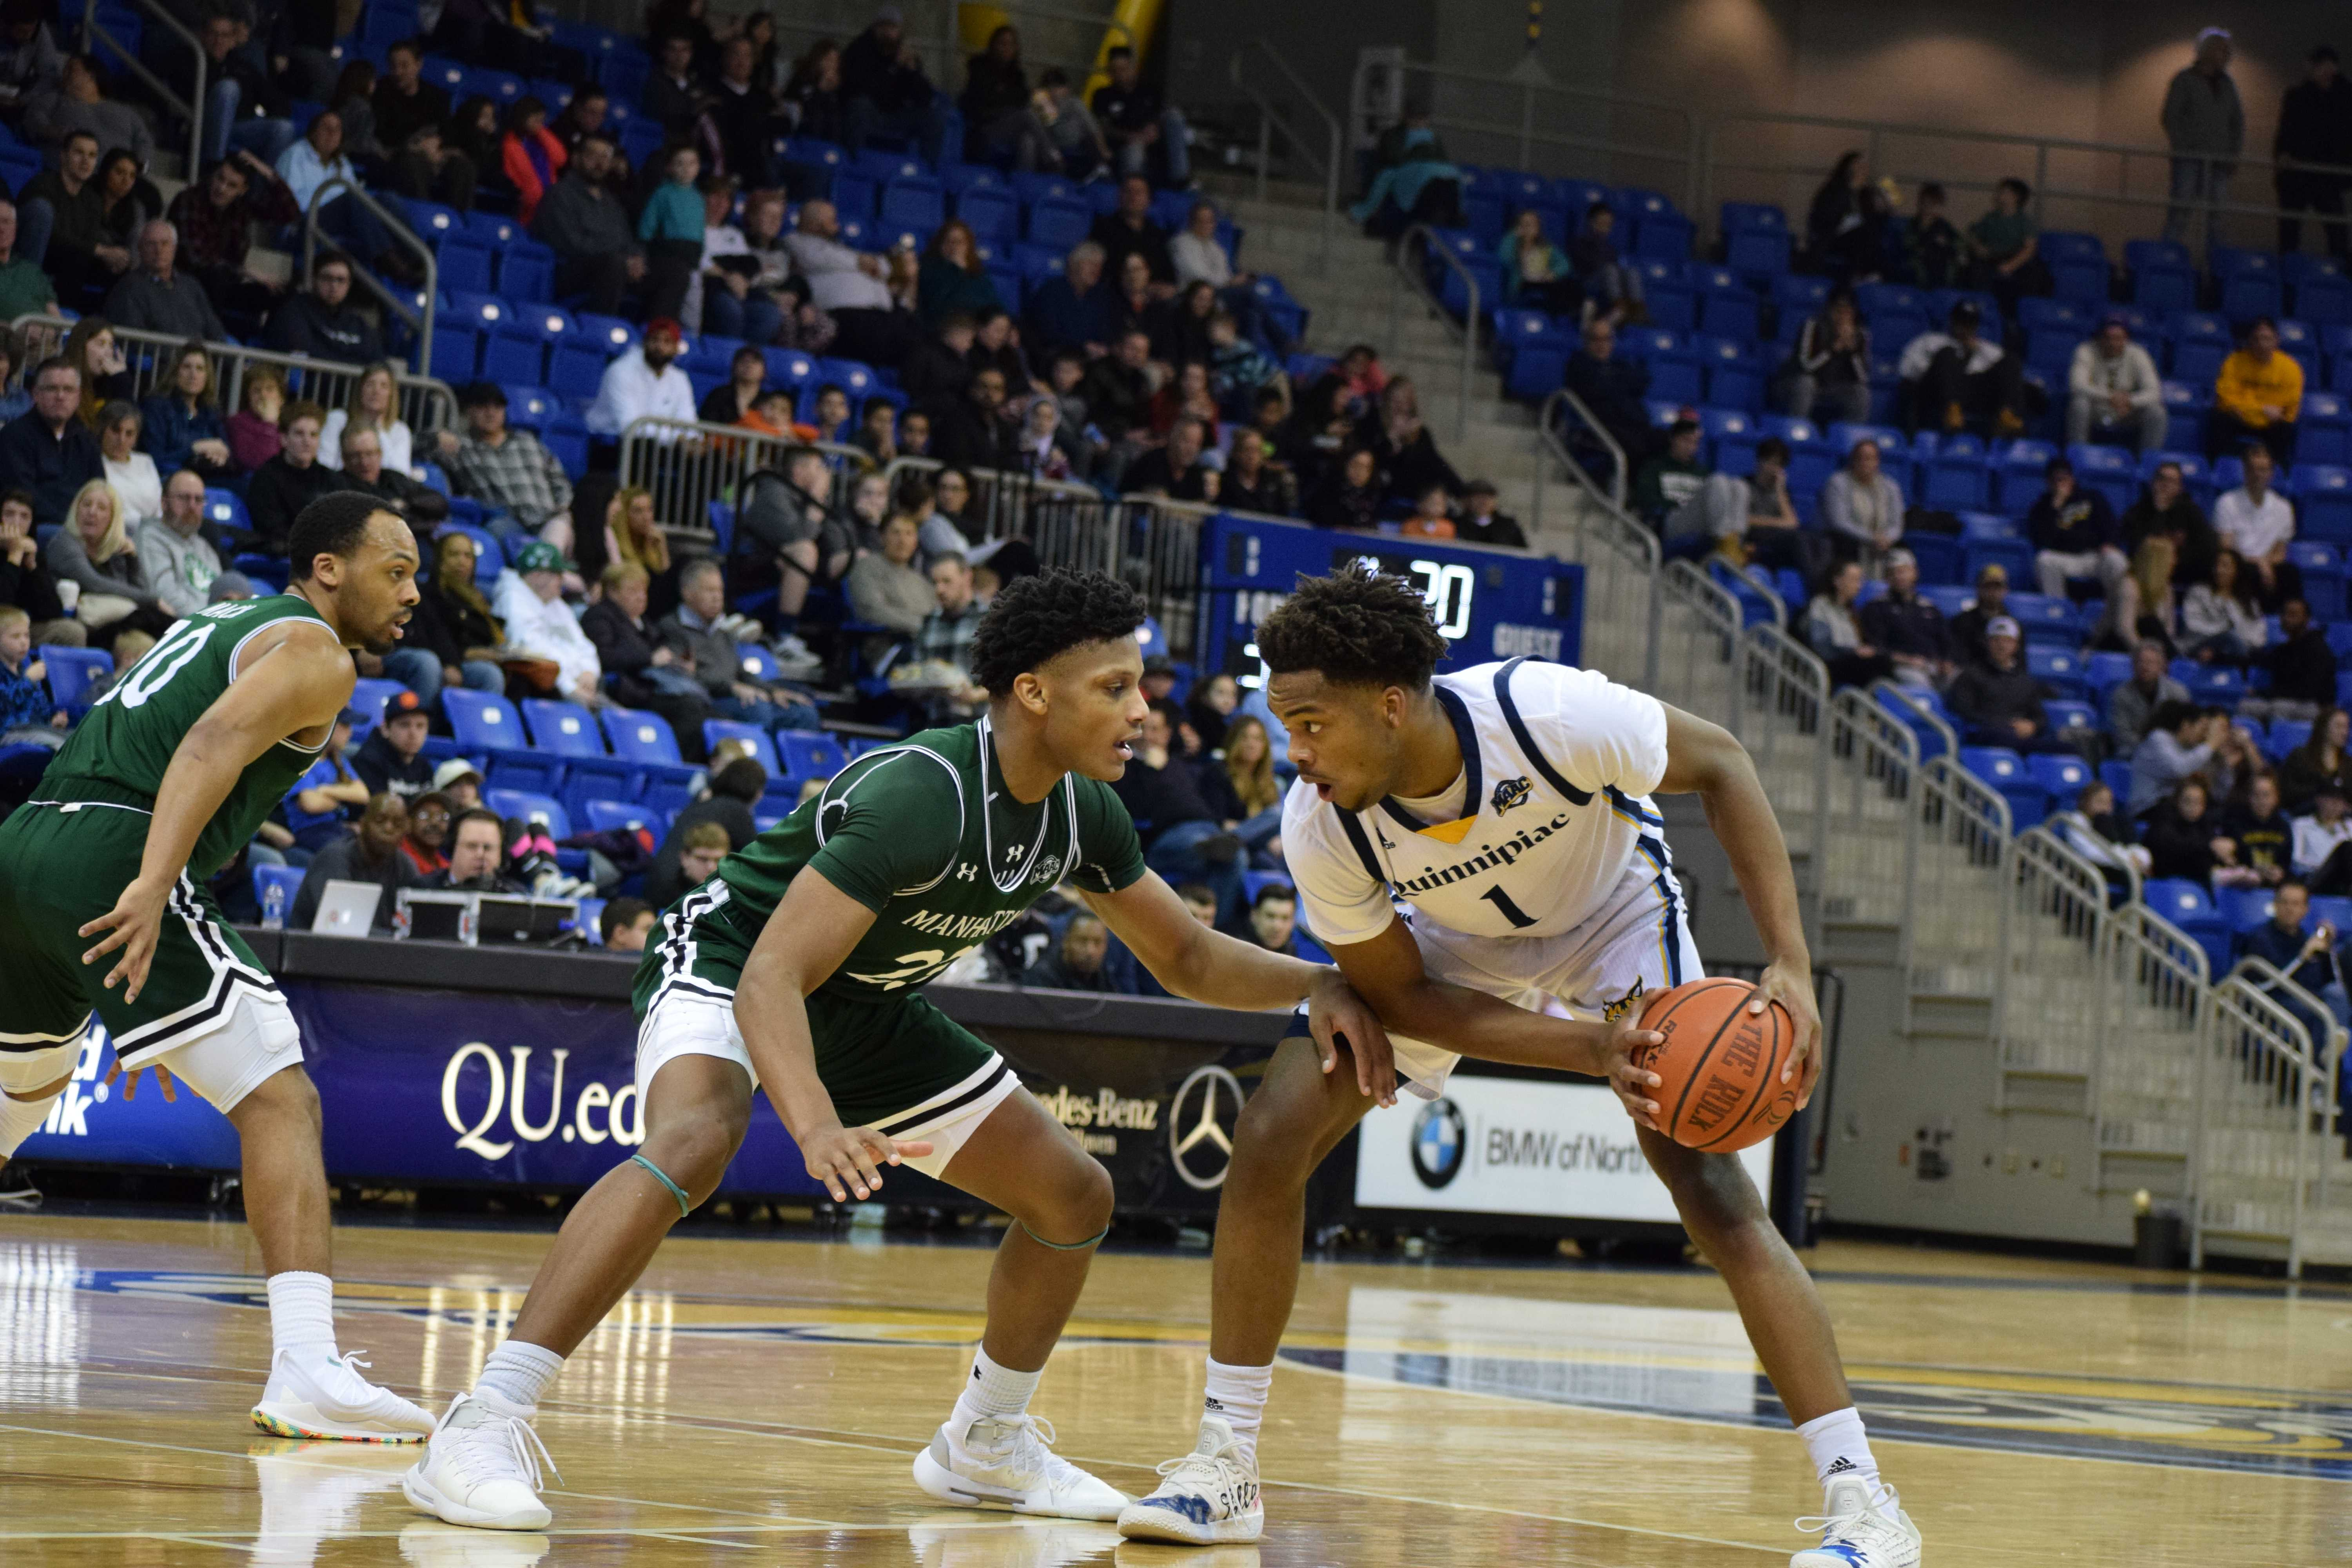 Quinnipiac men's basketball falls in final regular season game